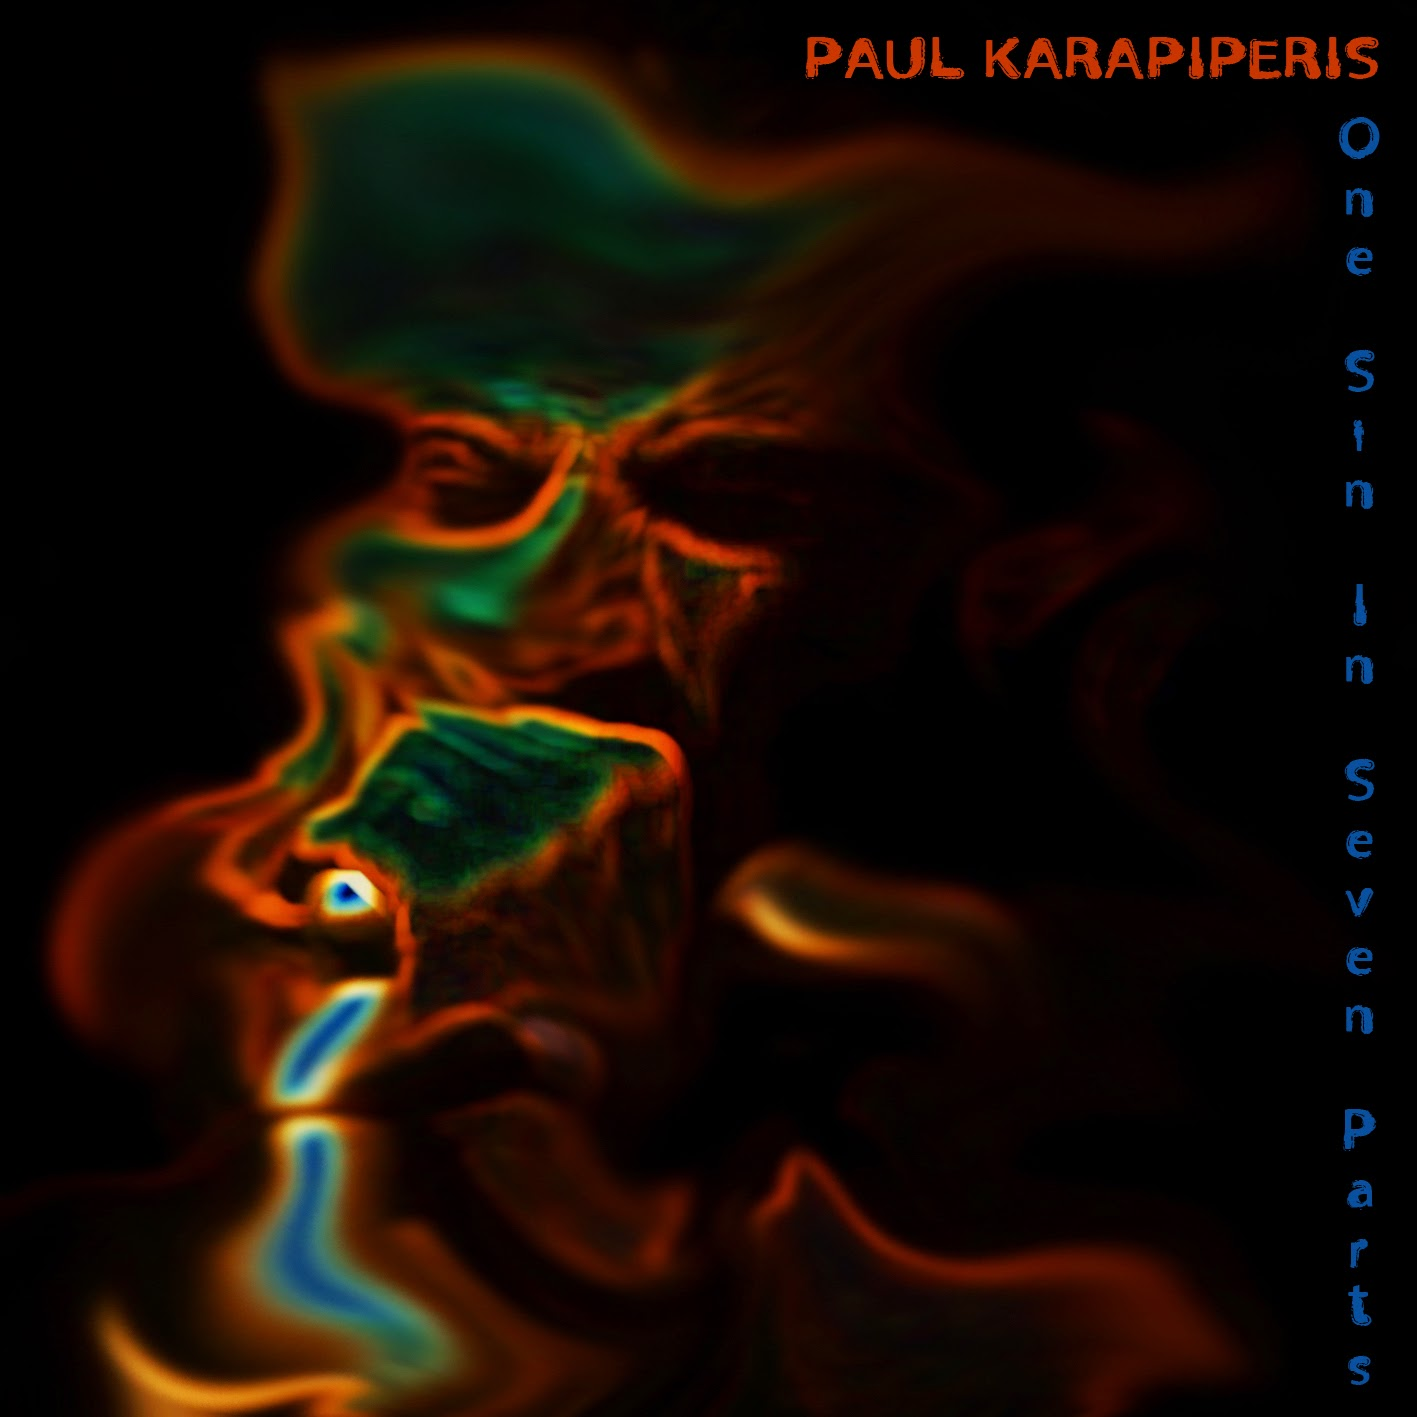 paul-karapiperis-one-sin-in-seven-parts-2014